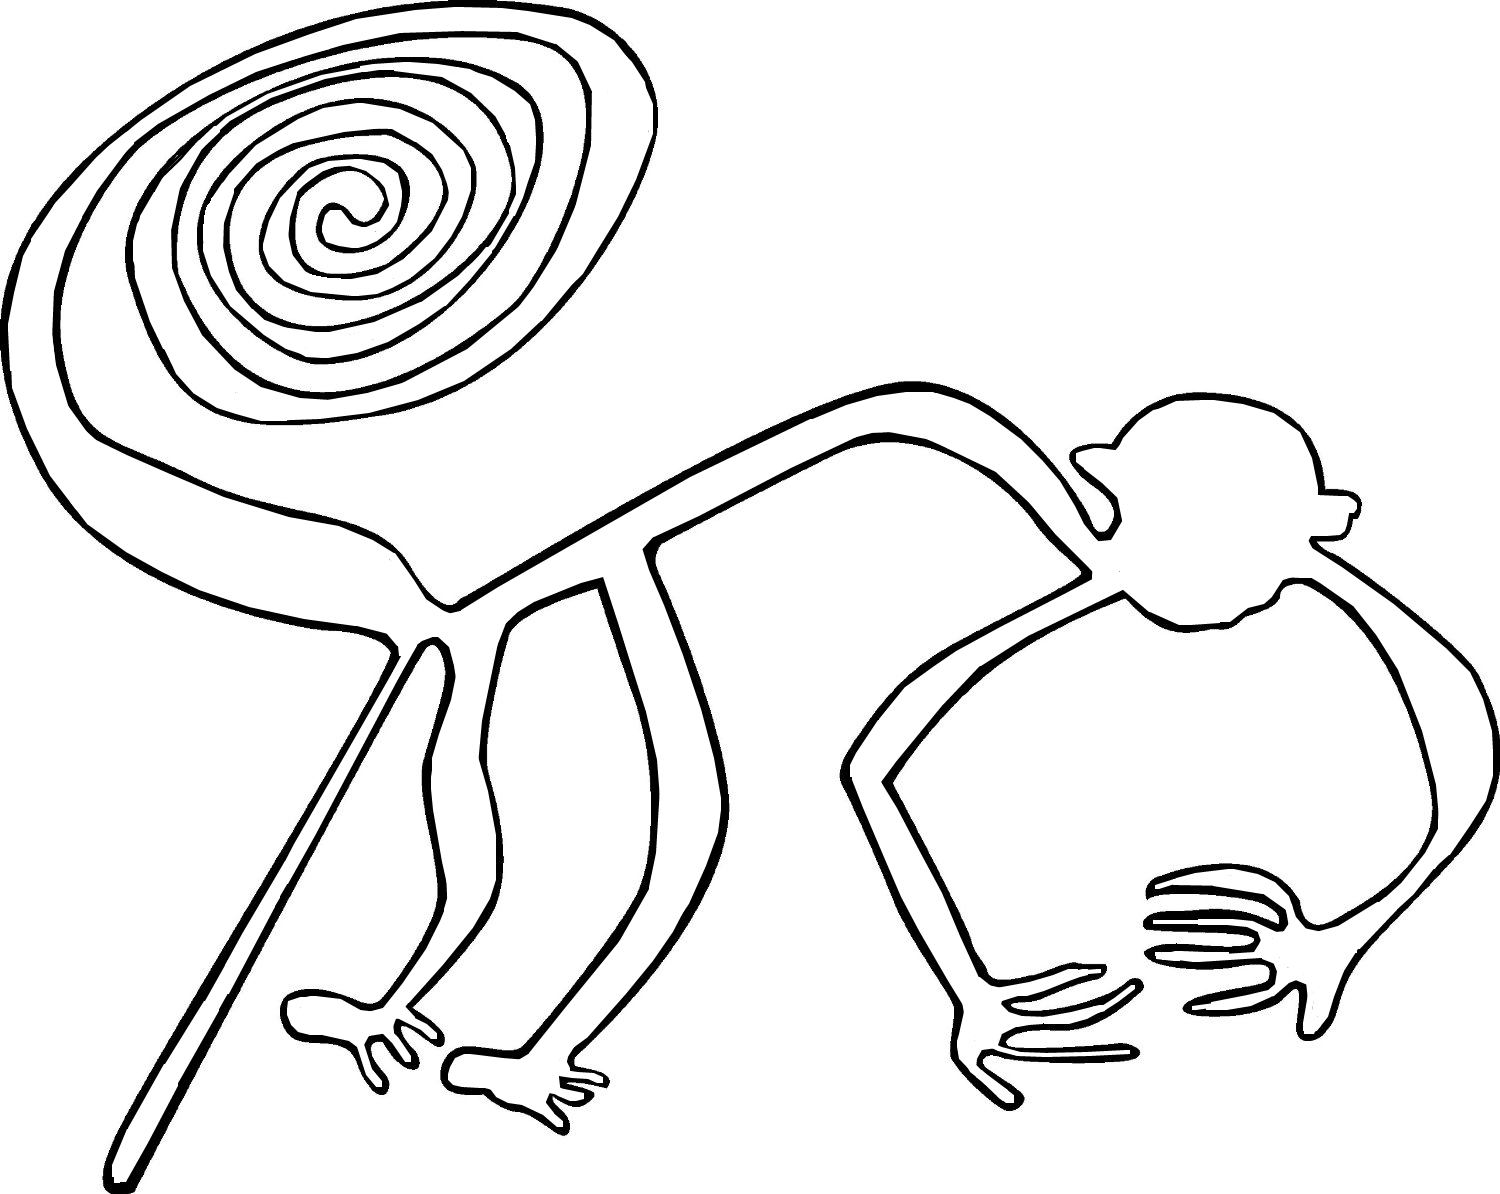 Line Art Work : Art lesson nazca plateau contour line drawing